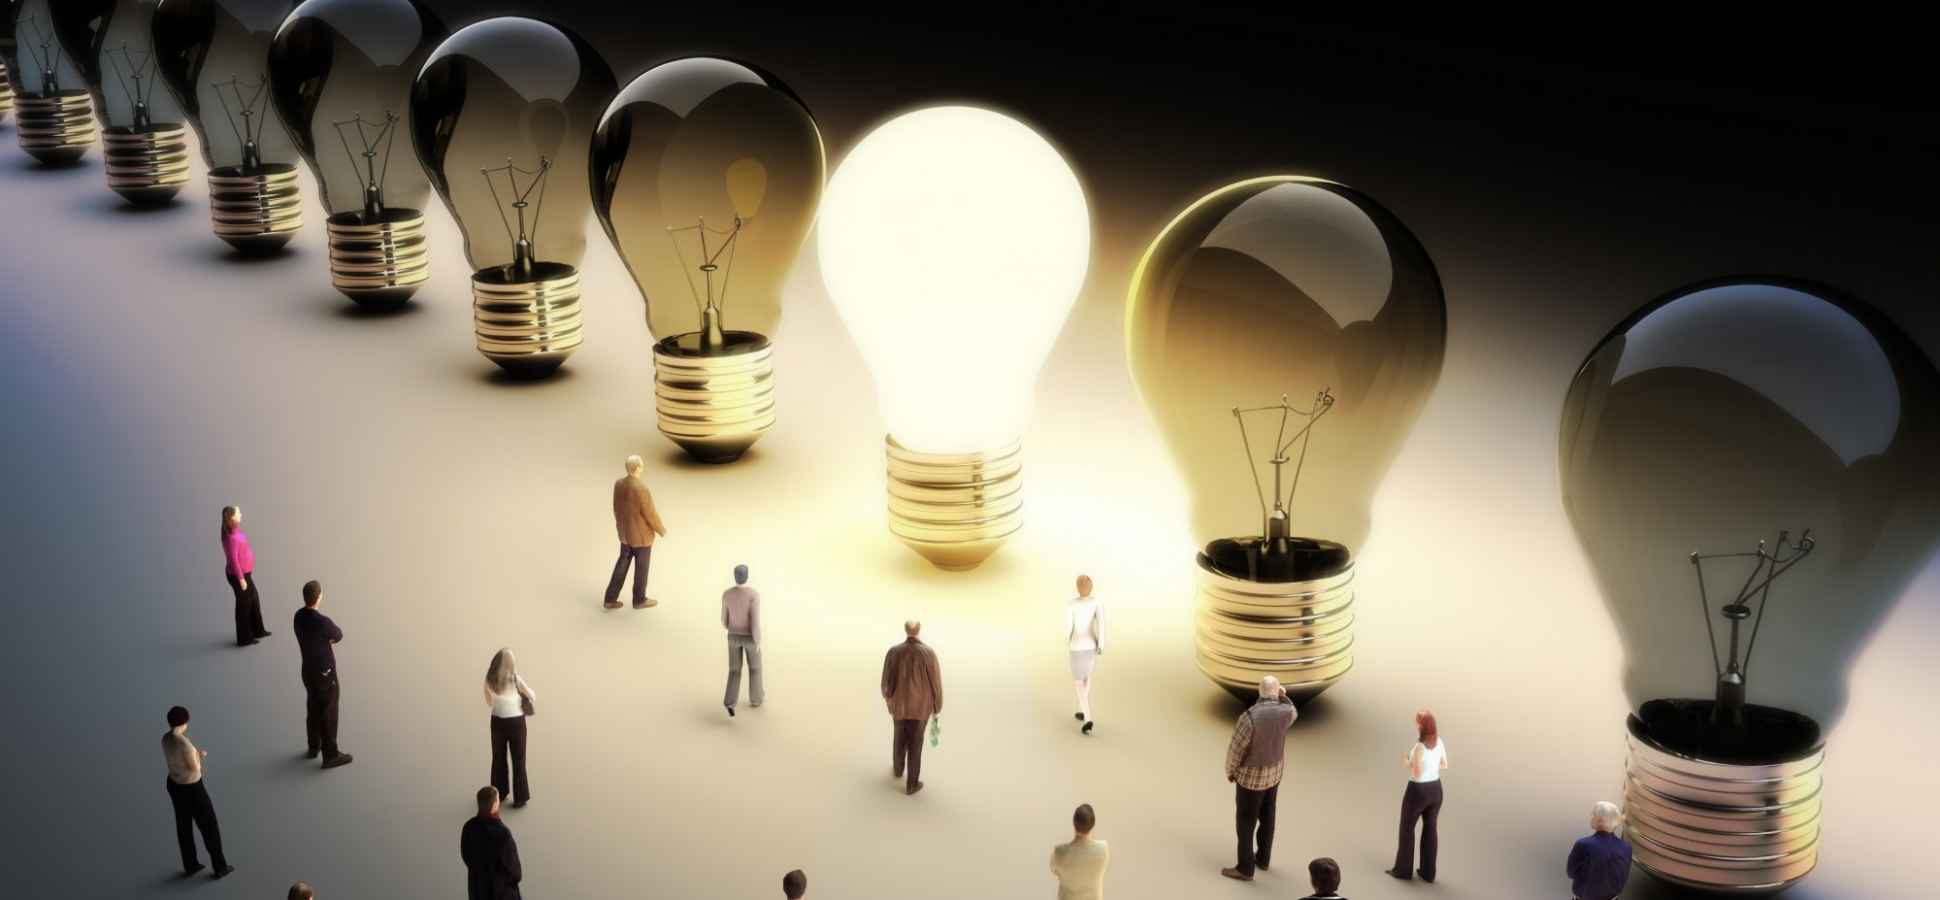 9 Reasons to Stop Thinking About Your Next Great Idea and Just Do It